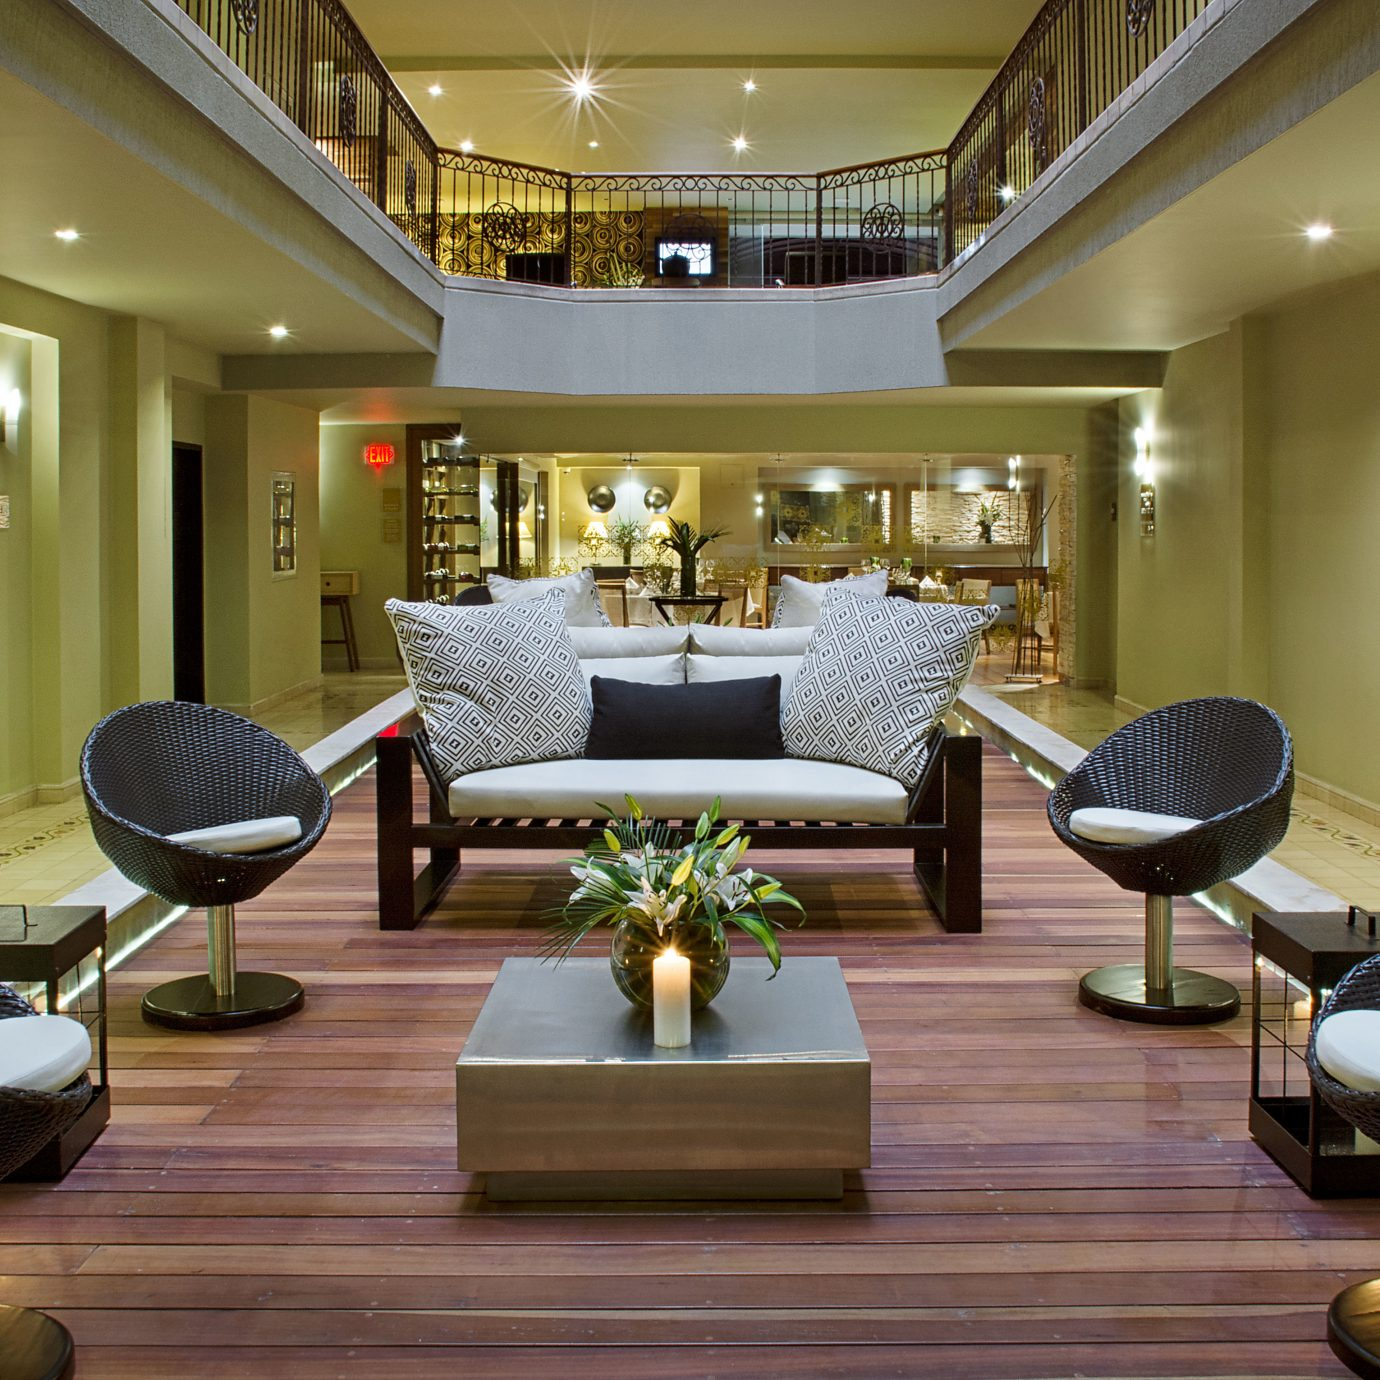 City Lobby Lounge Modern chair living room property condominium home Suite conference hall mansion office